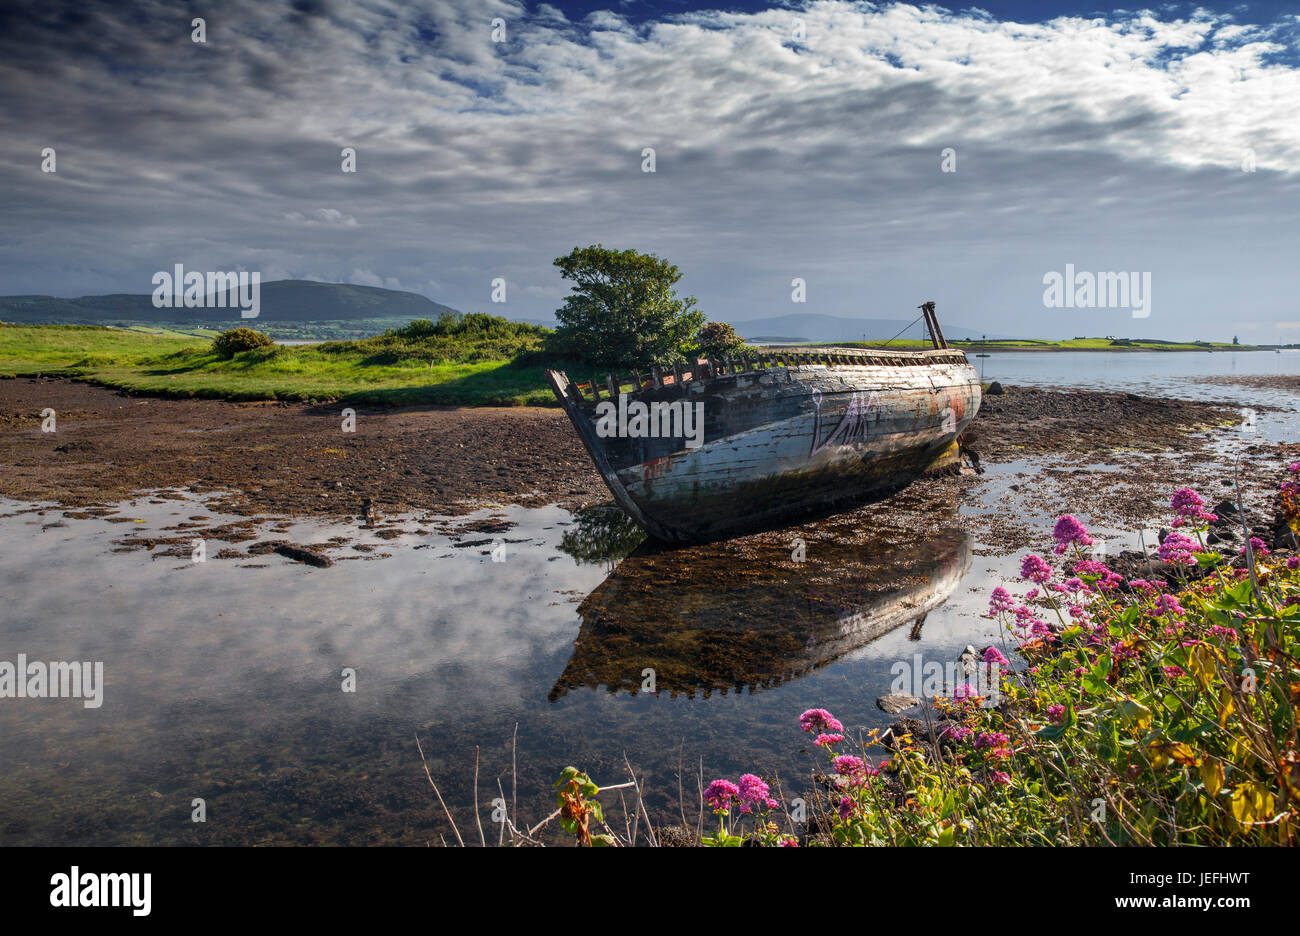 An old wrecked fishing boat on the Garavogue River at Rosses Point, County Sligo, Ireland - Stock Image